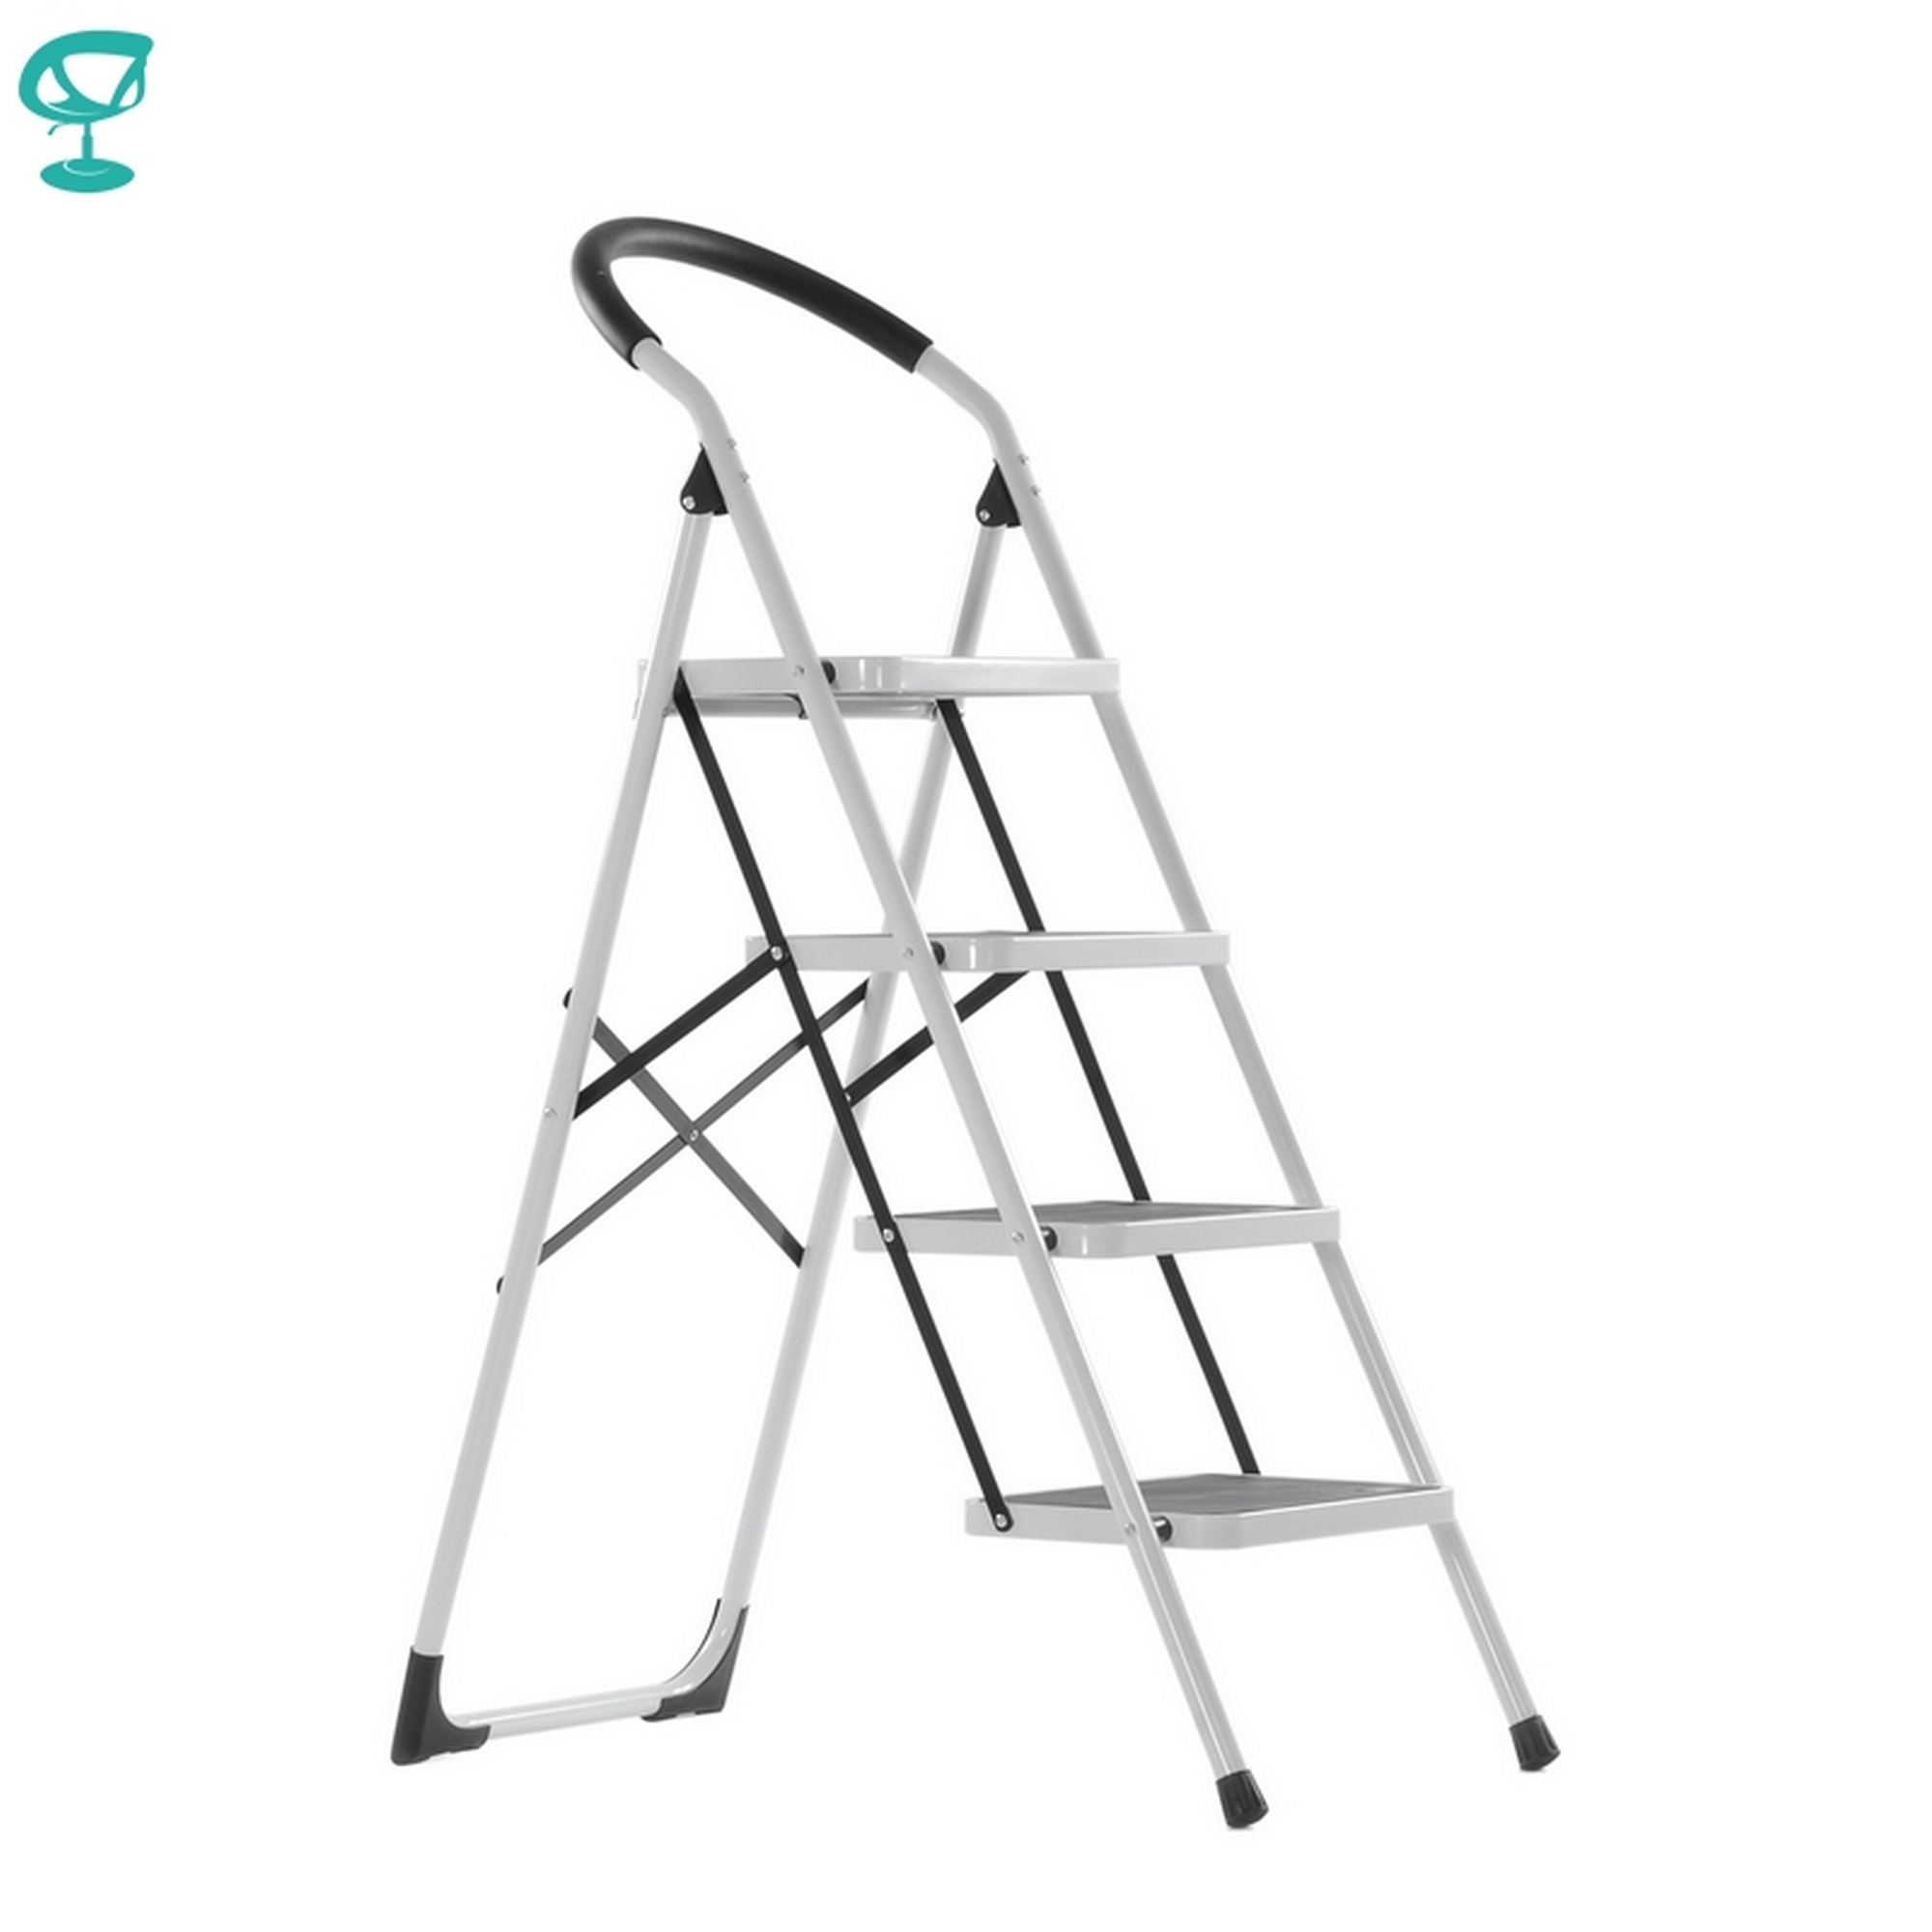 95667 Barneo ST-34 Ladder Steel 4 Stage White Single Side Max Load 150 Kg Free Shipping To Russia